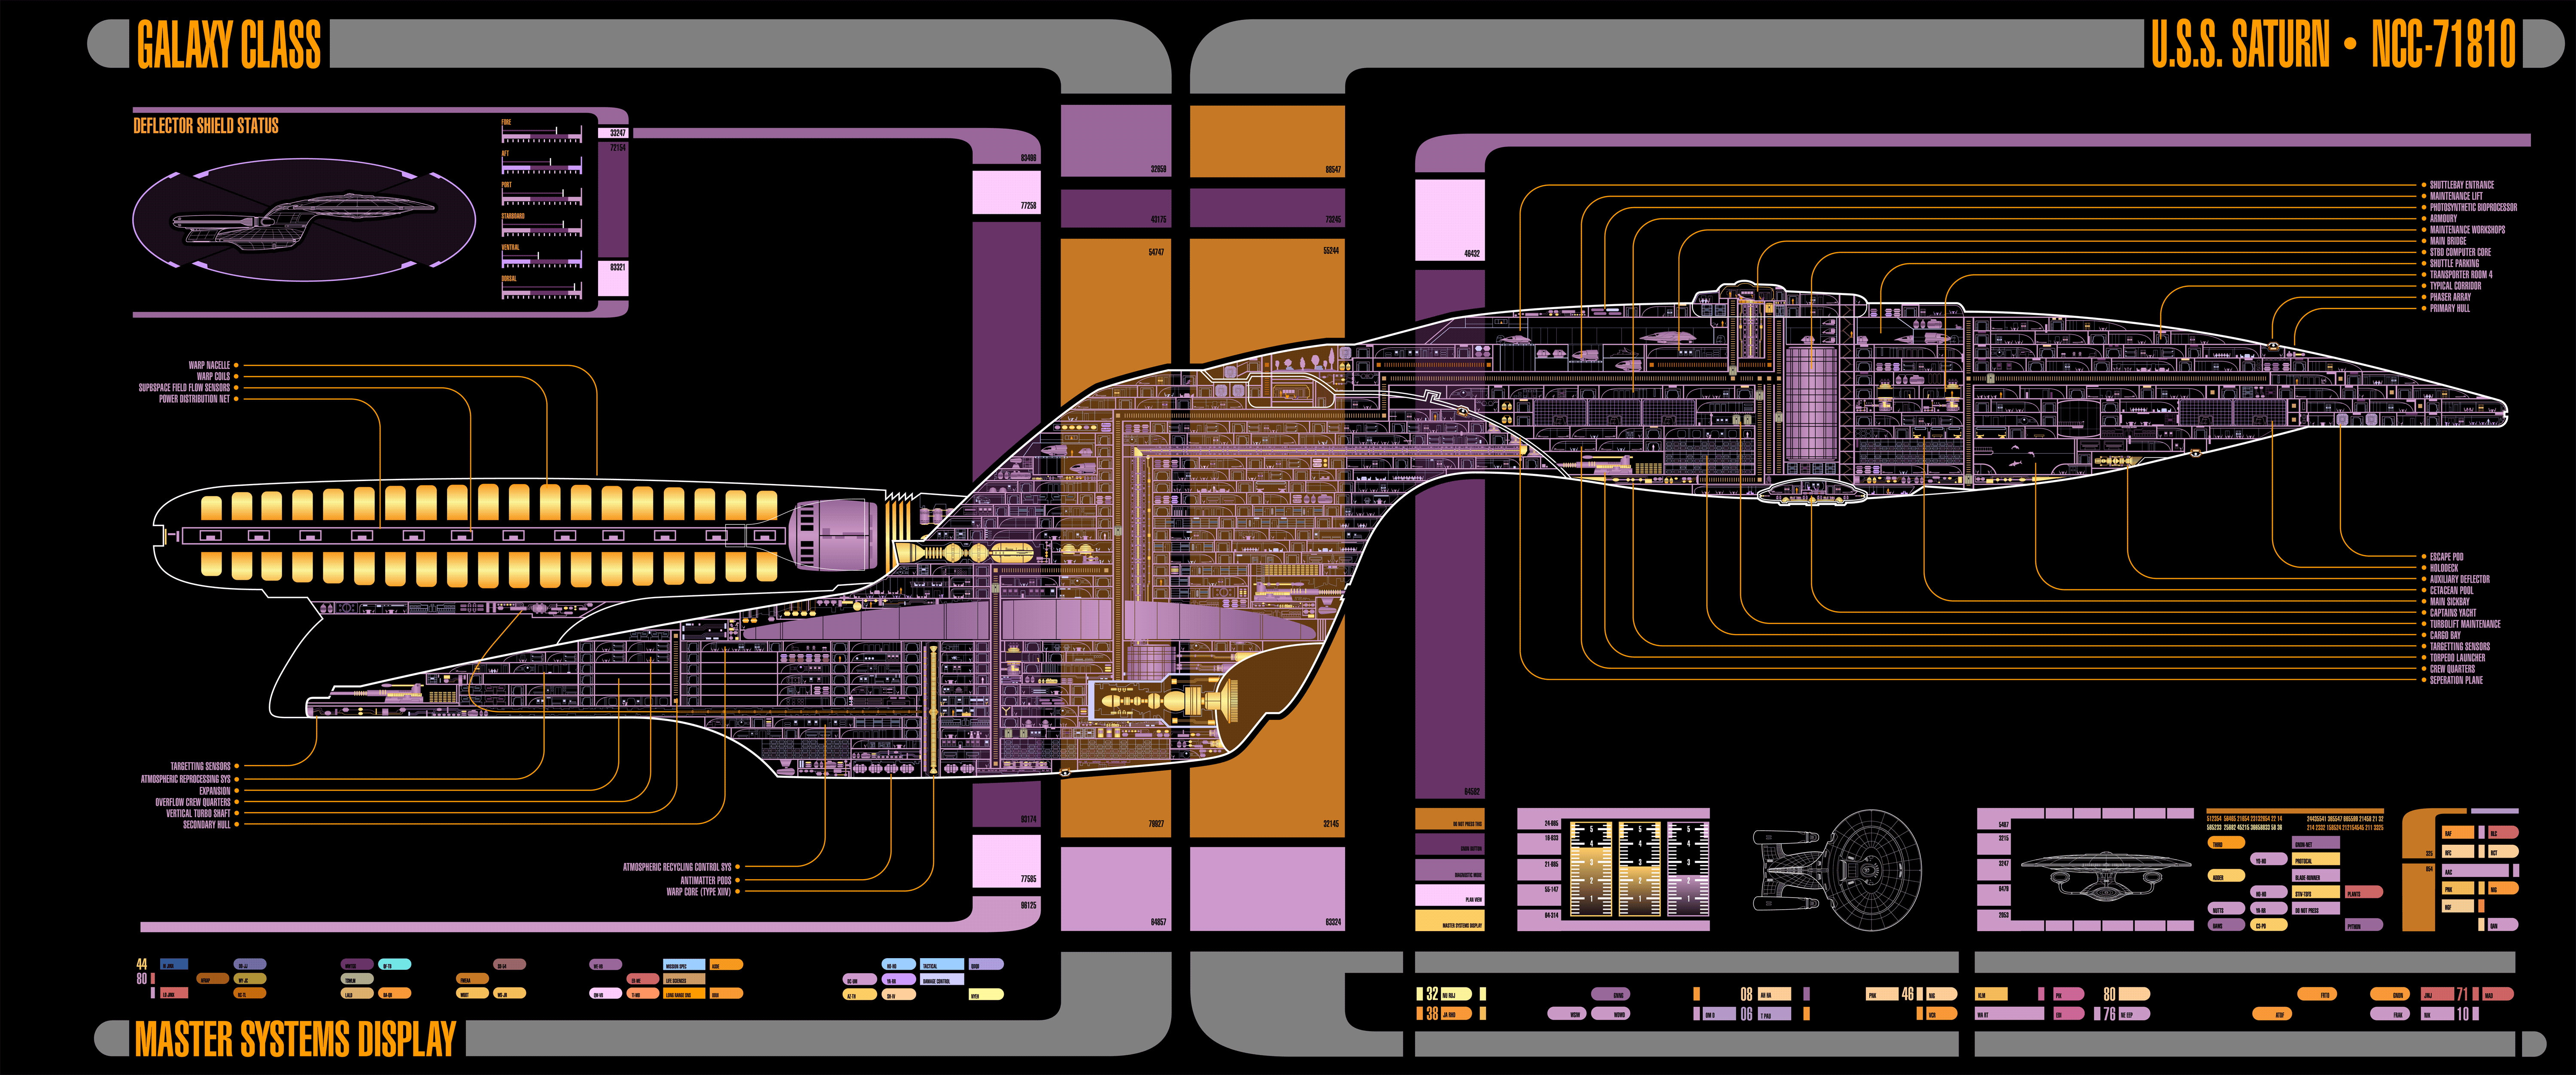 small resolution of enterprise d with additional detail by padsbrat star trek iii star wars alien ship